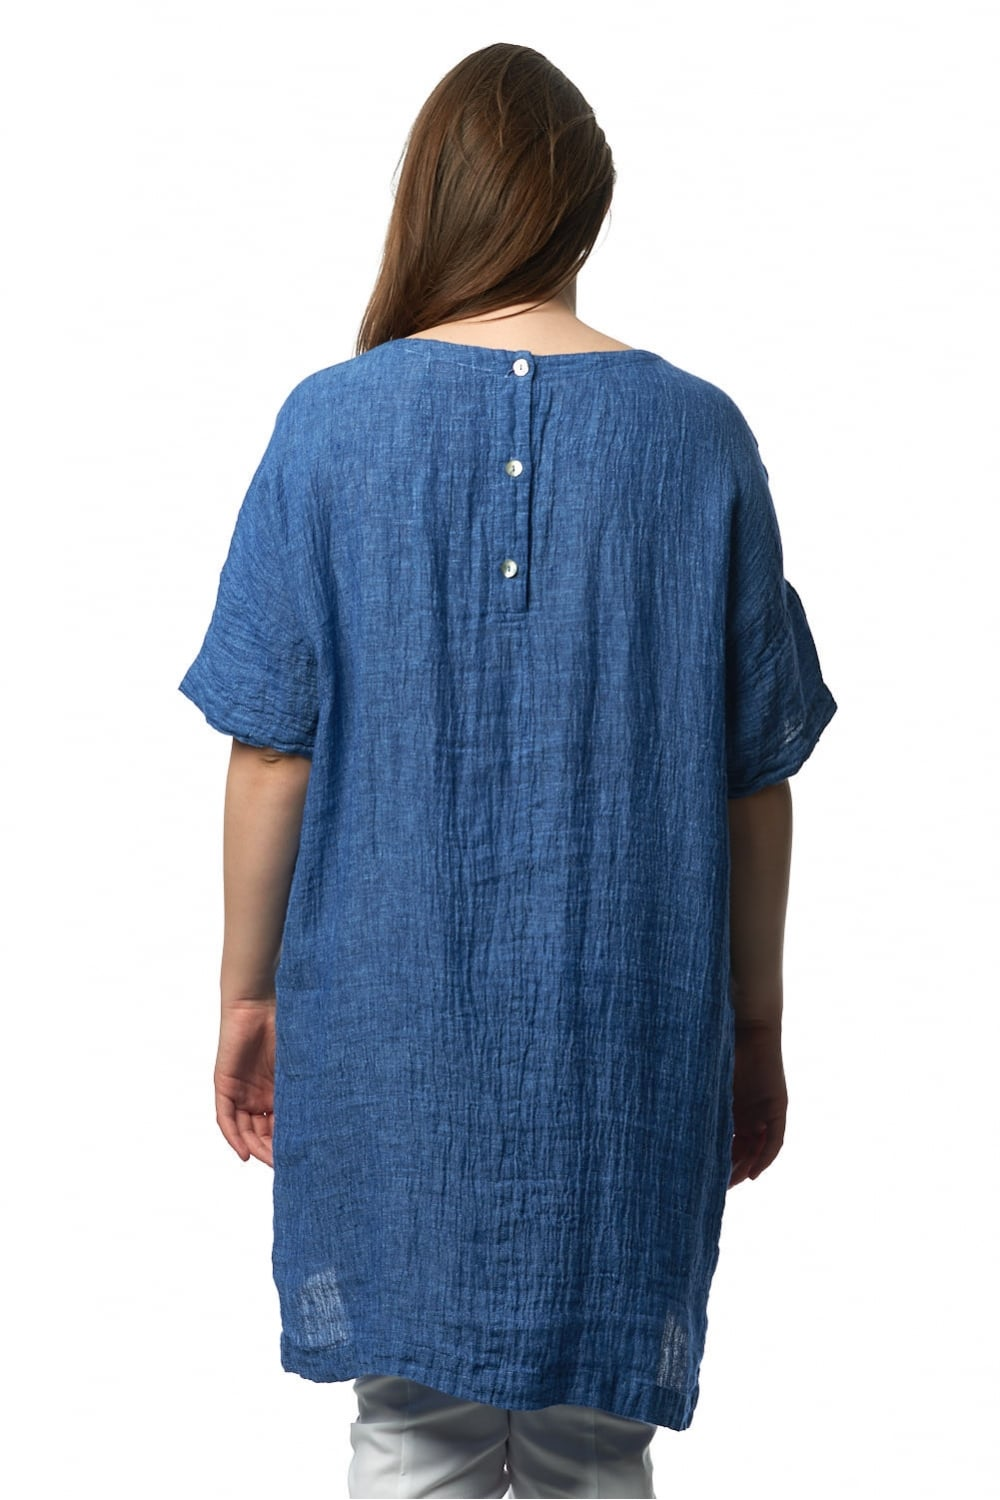 Find great deals on eBay for linen tunic dress. Shop with confidence.